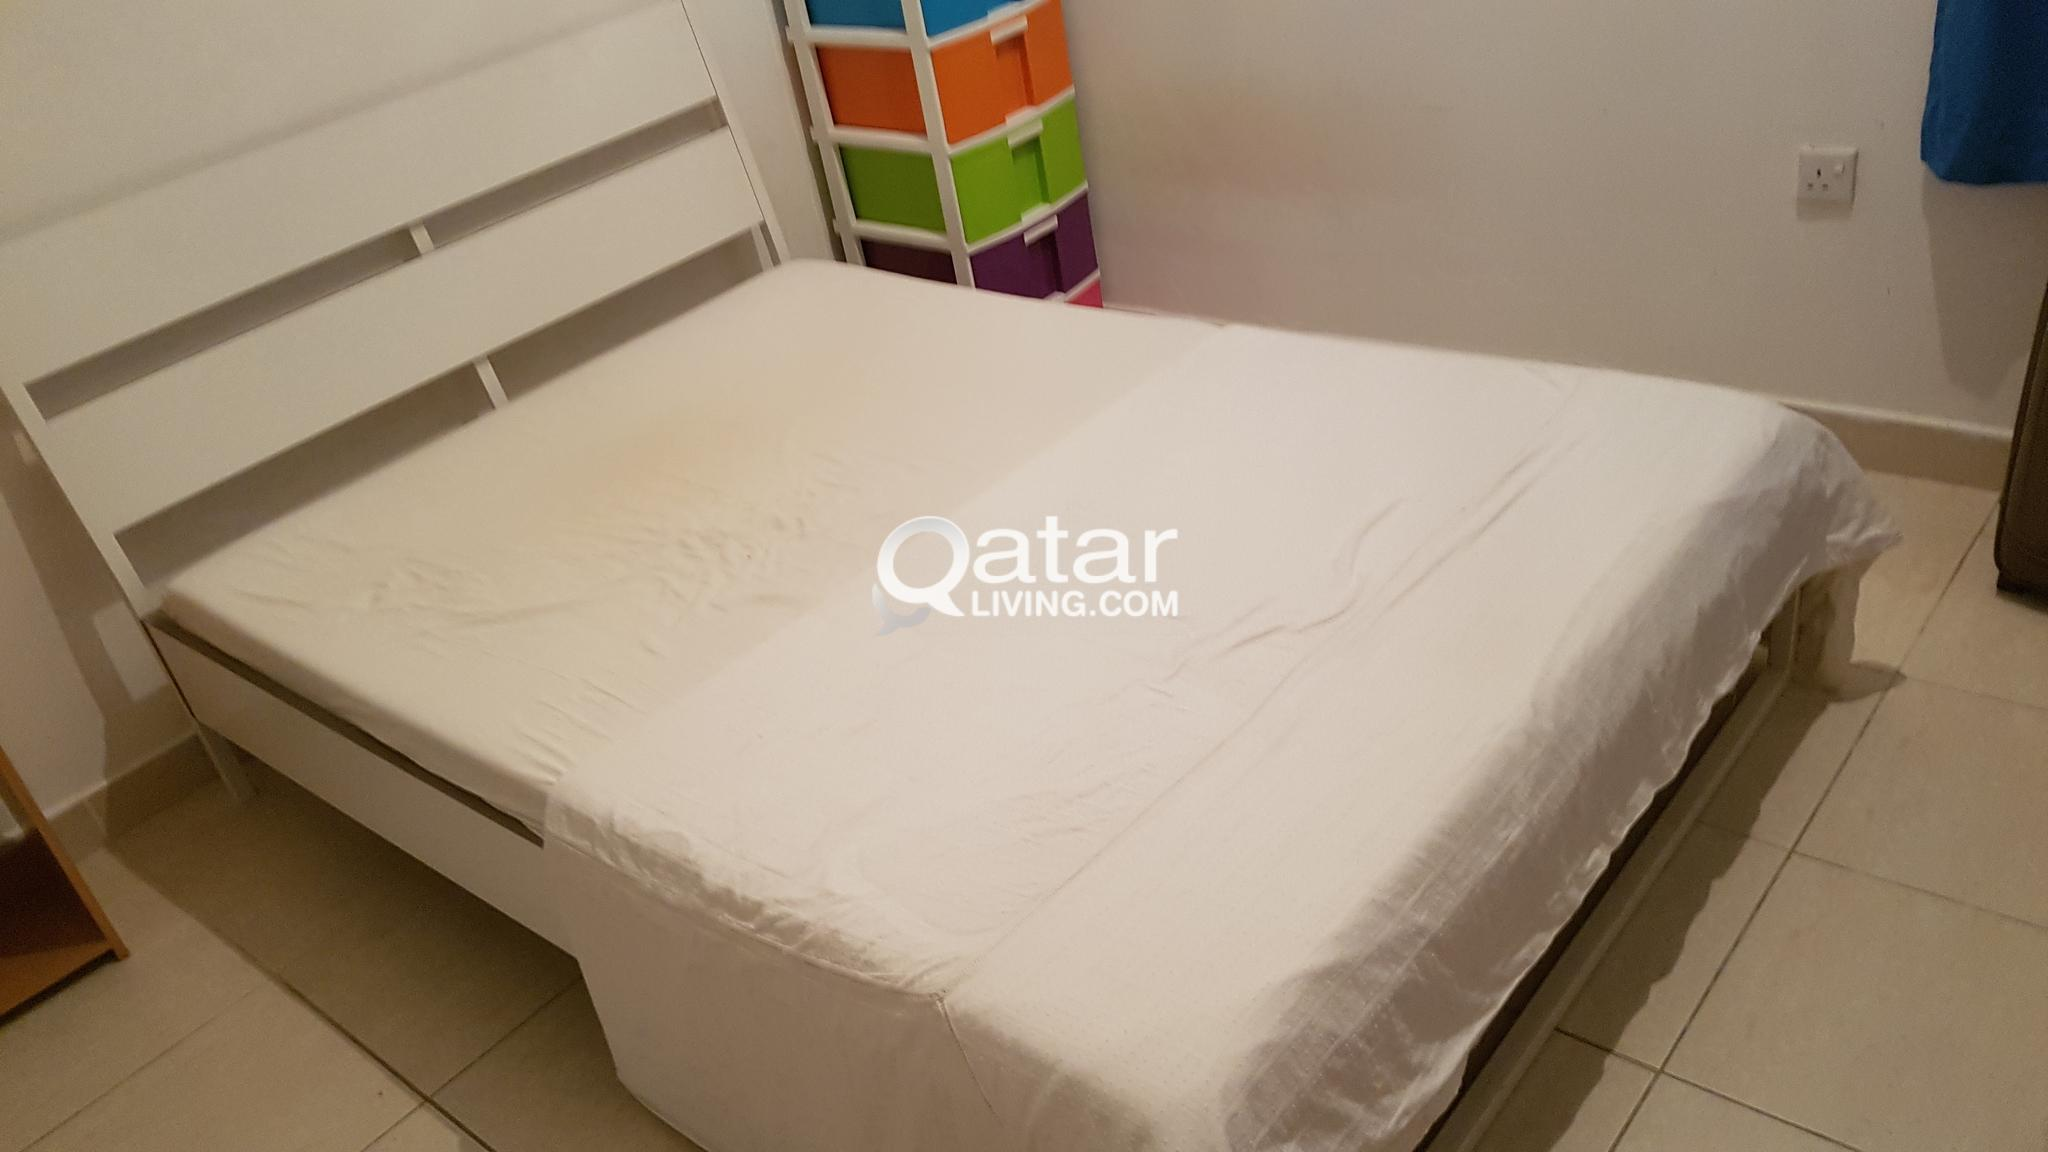 Ikea Boxspring 220 Cm Ikea Bed For Sale 220x140 Cm Including Mattress Qatar Living